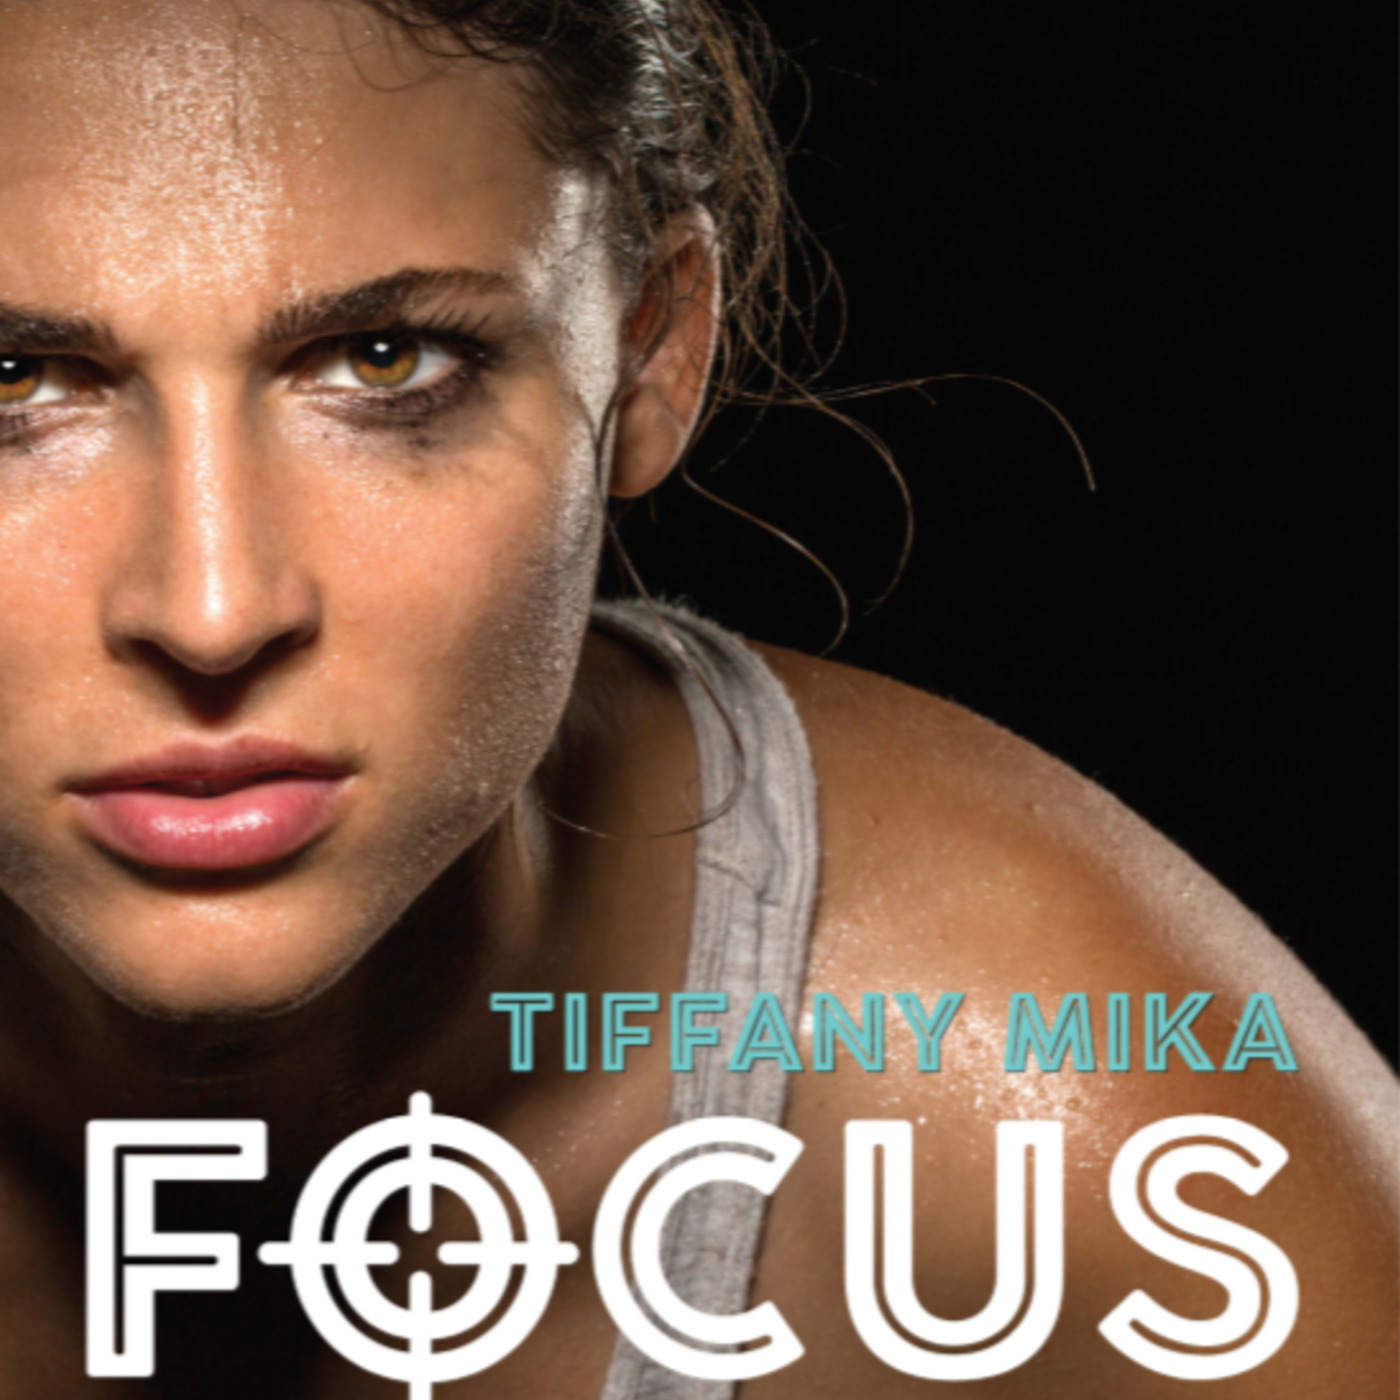 Tiffany Mika Podcast: Your Hidden Talent Interview - Focus - How To Reach Your Potential In Sport, Business & Life